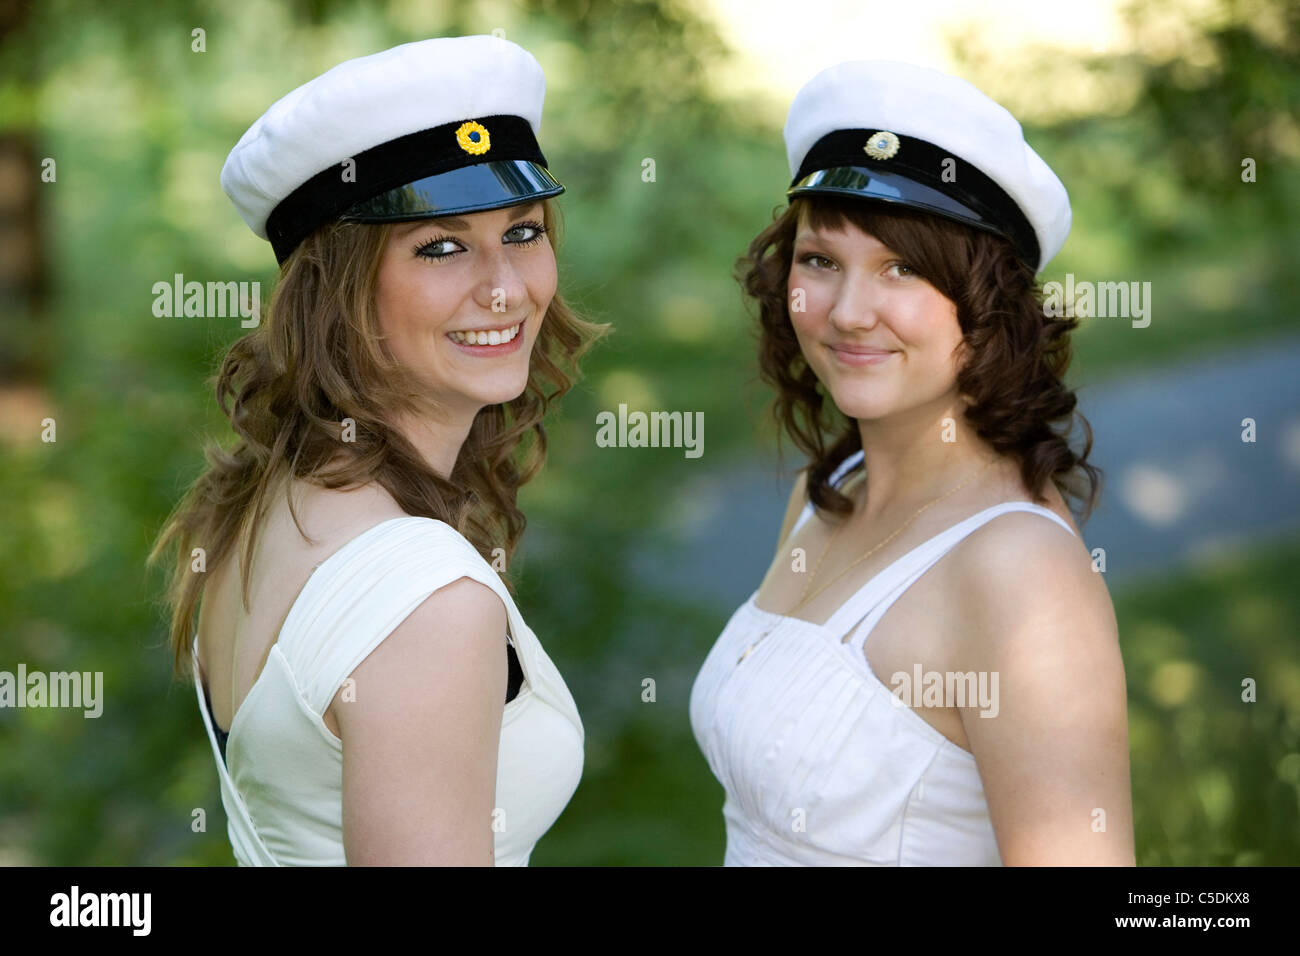 Portrait of two happy female students in graduation hats against blurred green background - Stock Image